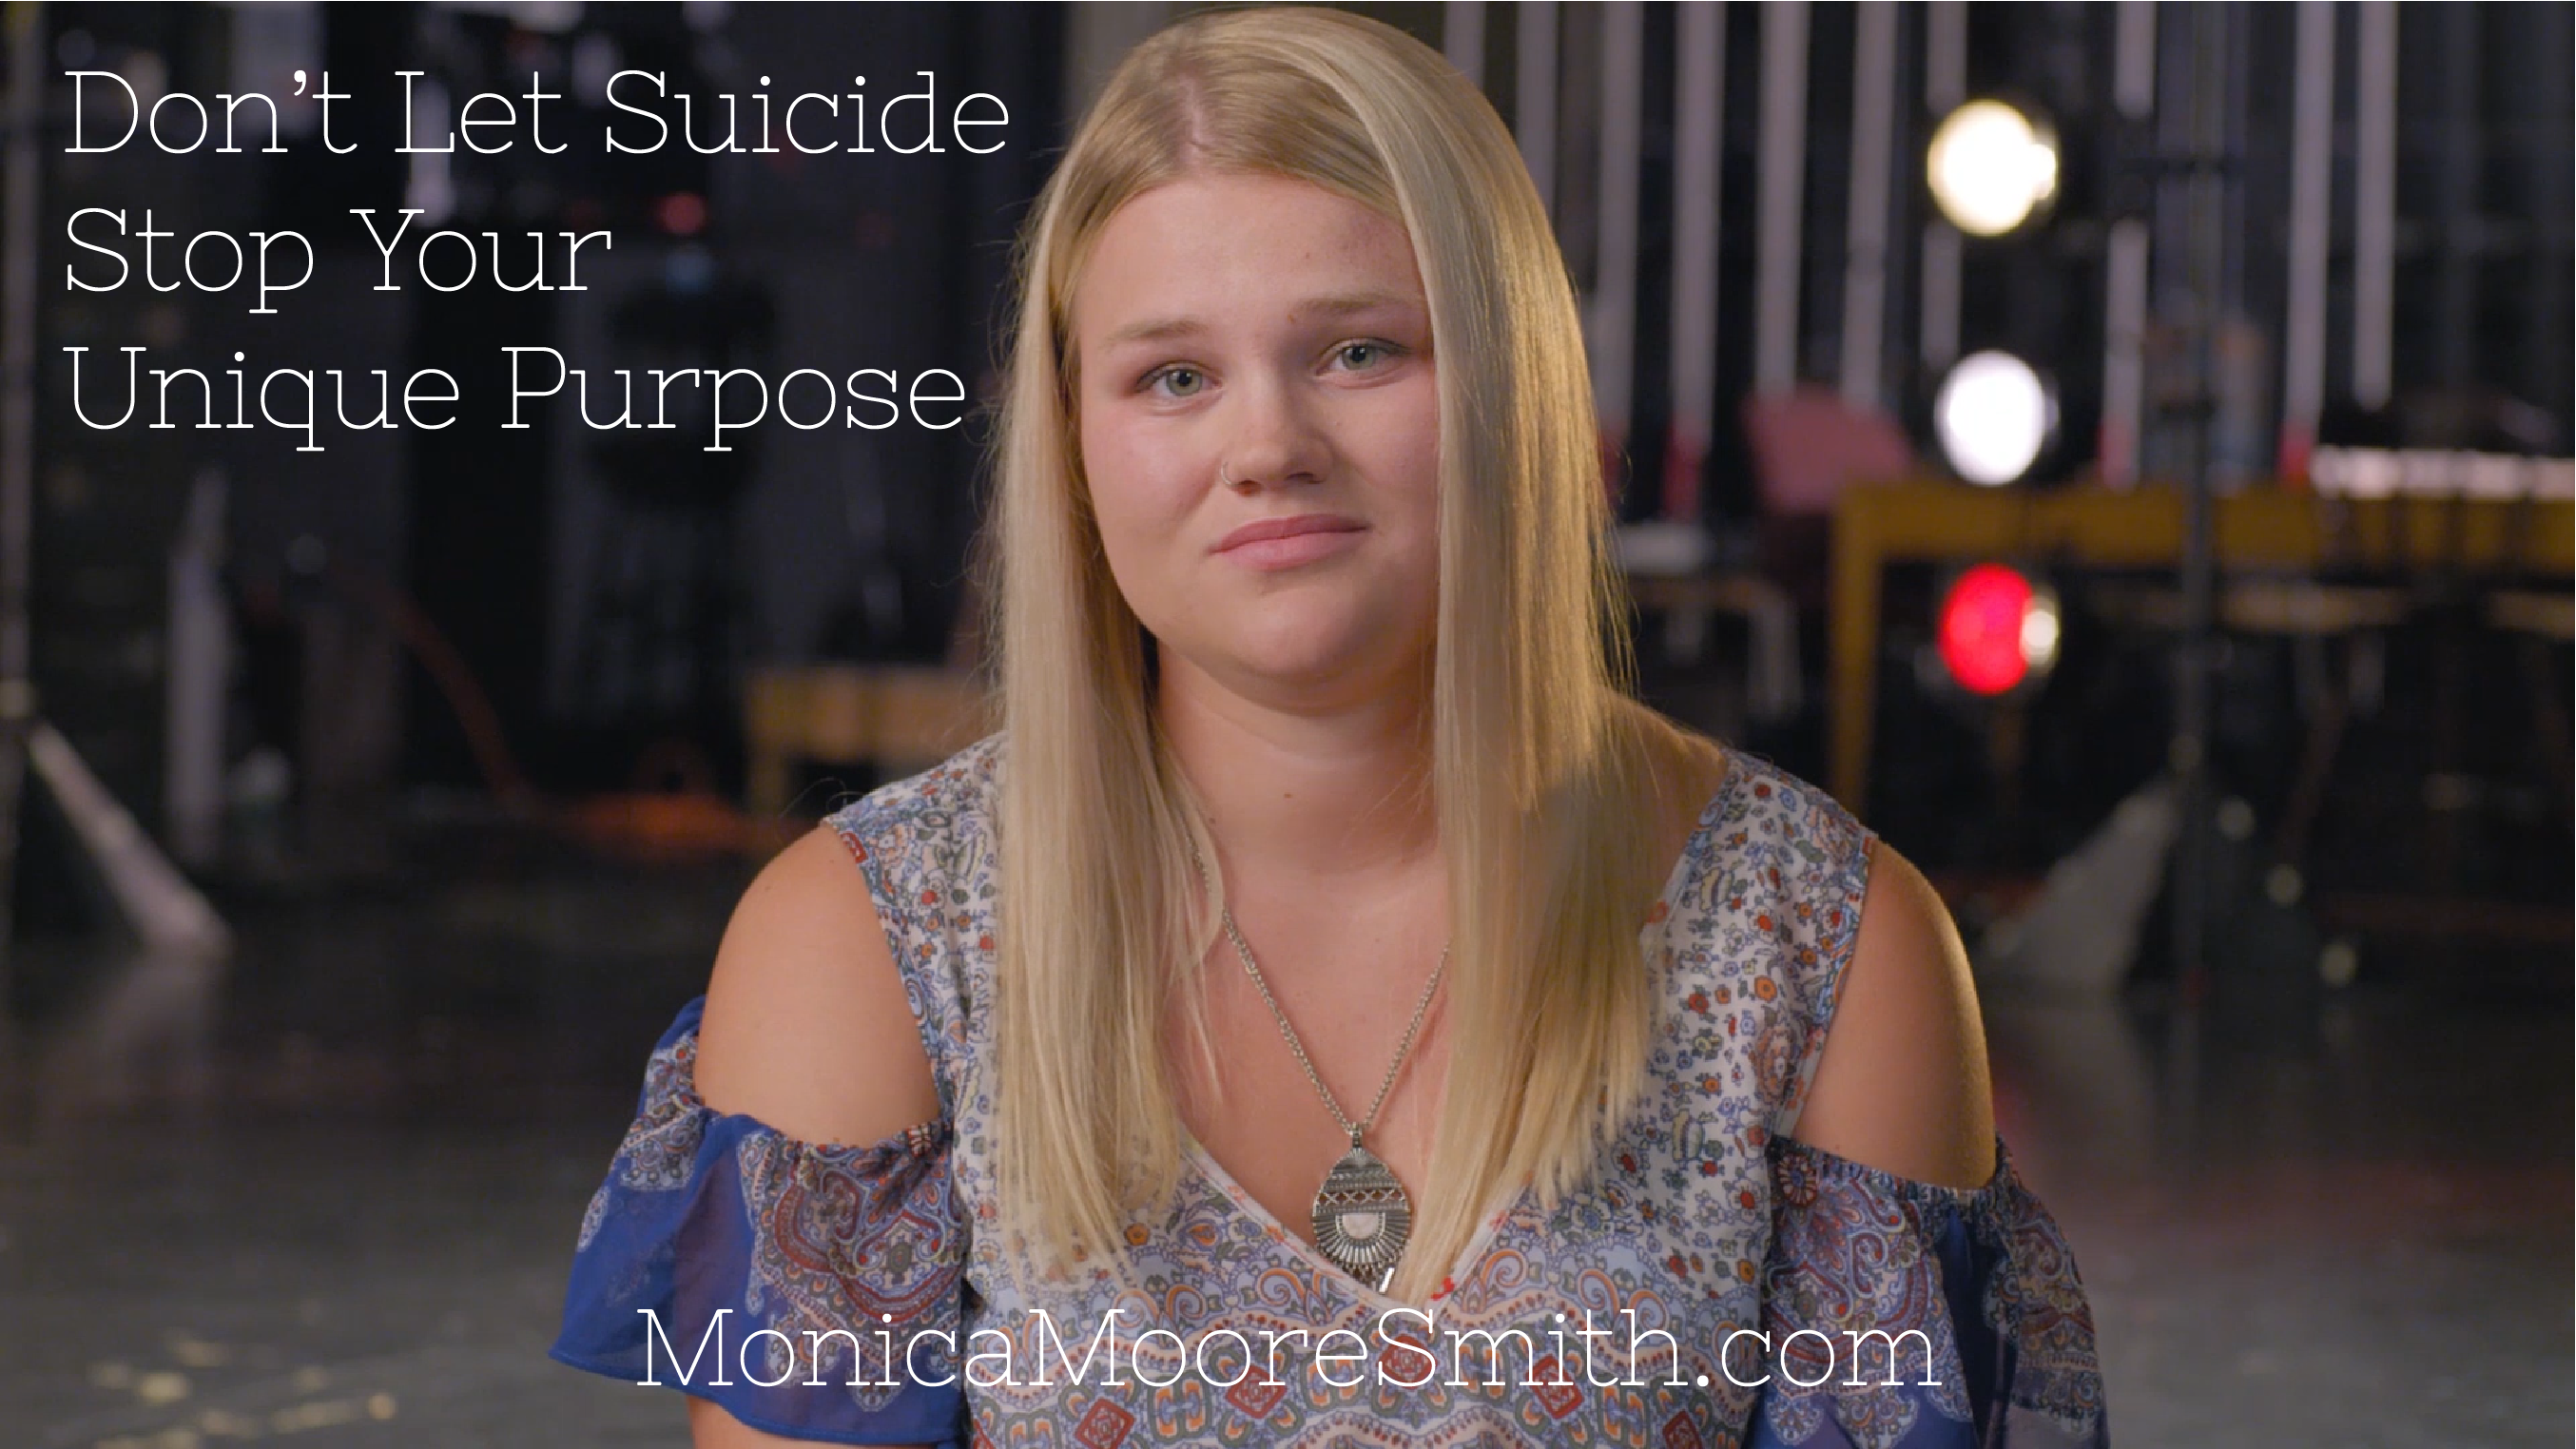 Don't Let Suicide Stop Your Unique Purpose